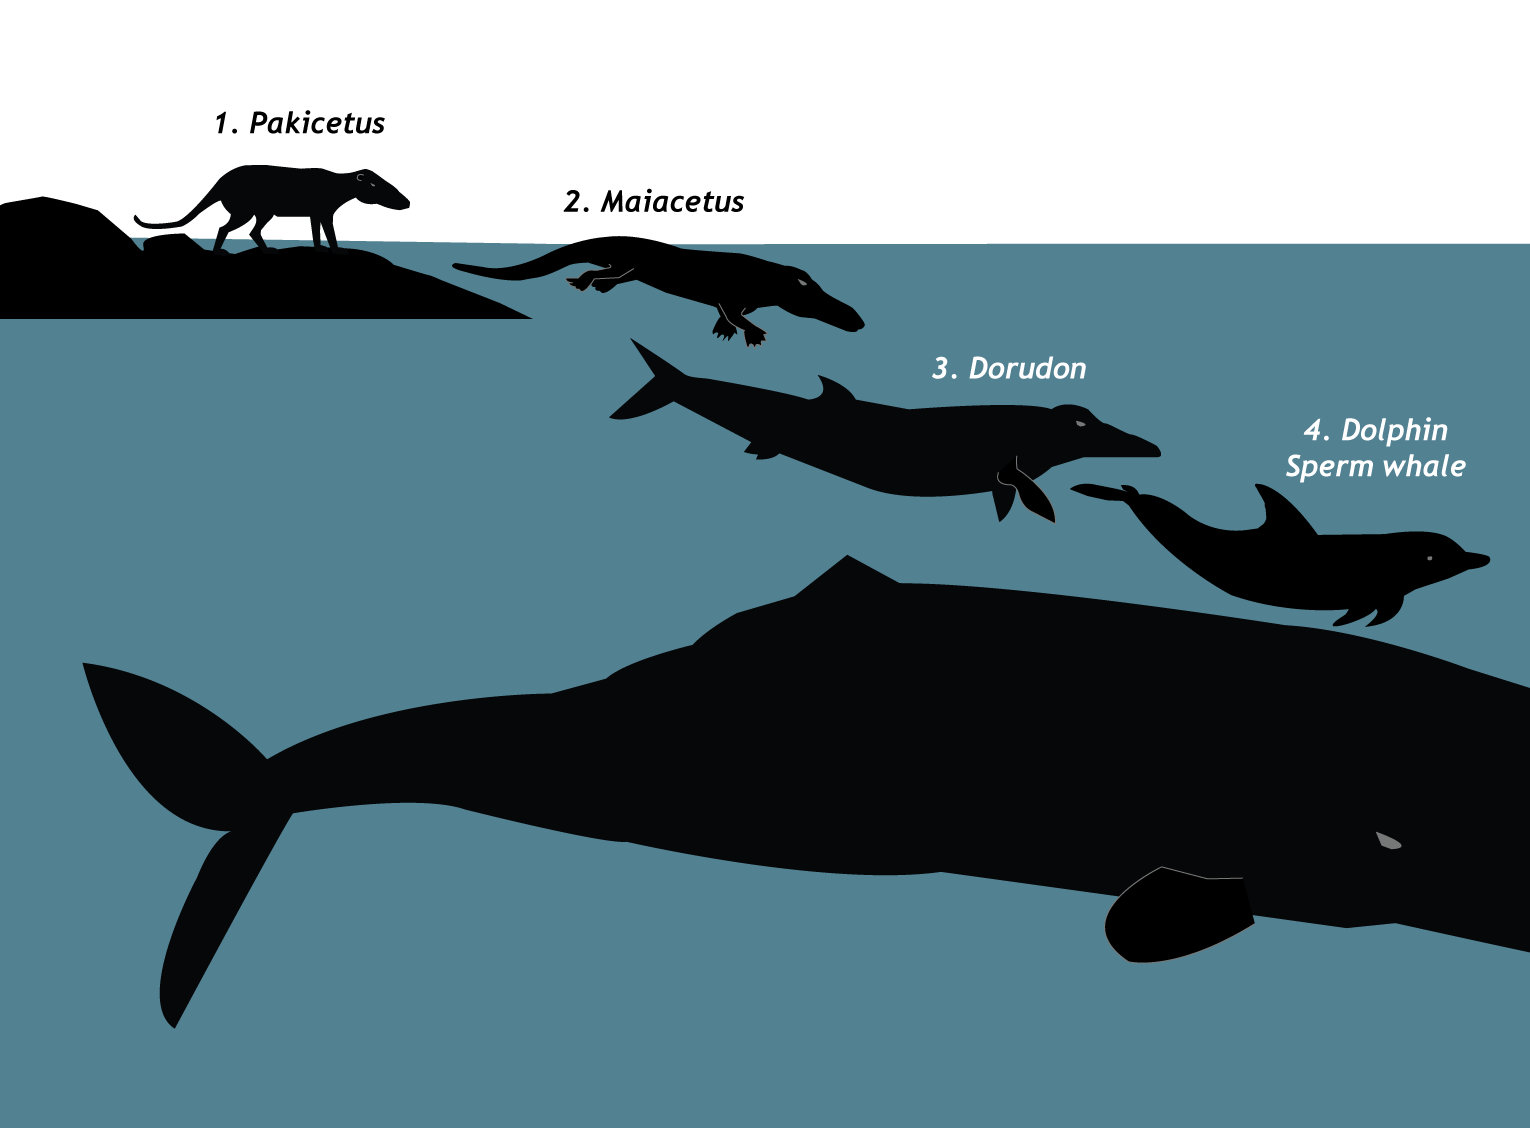 Evolution of whales. Image: Annica Roos, NRM